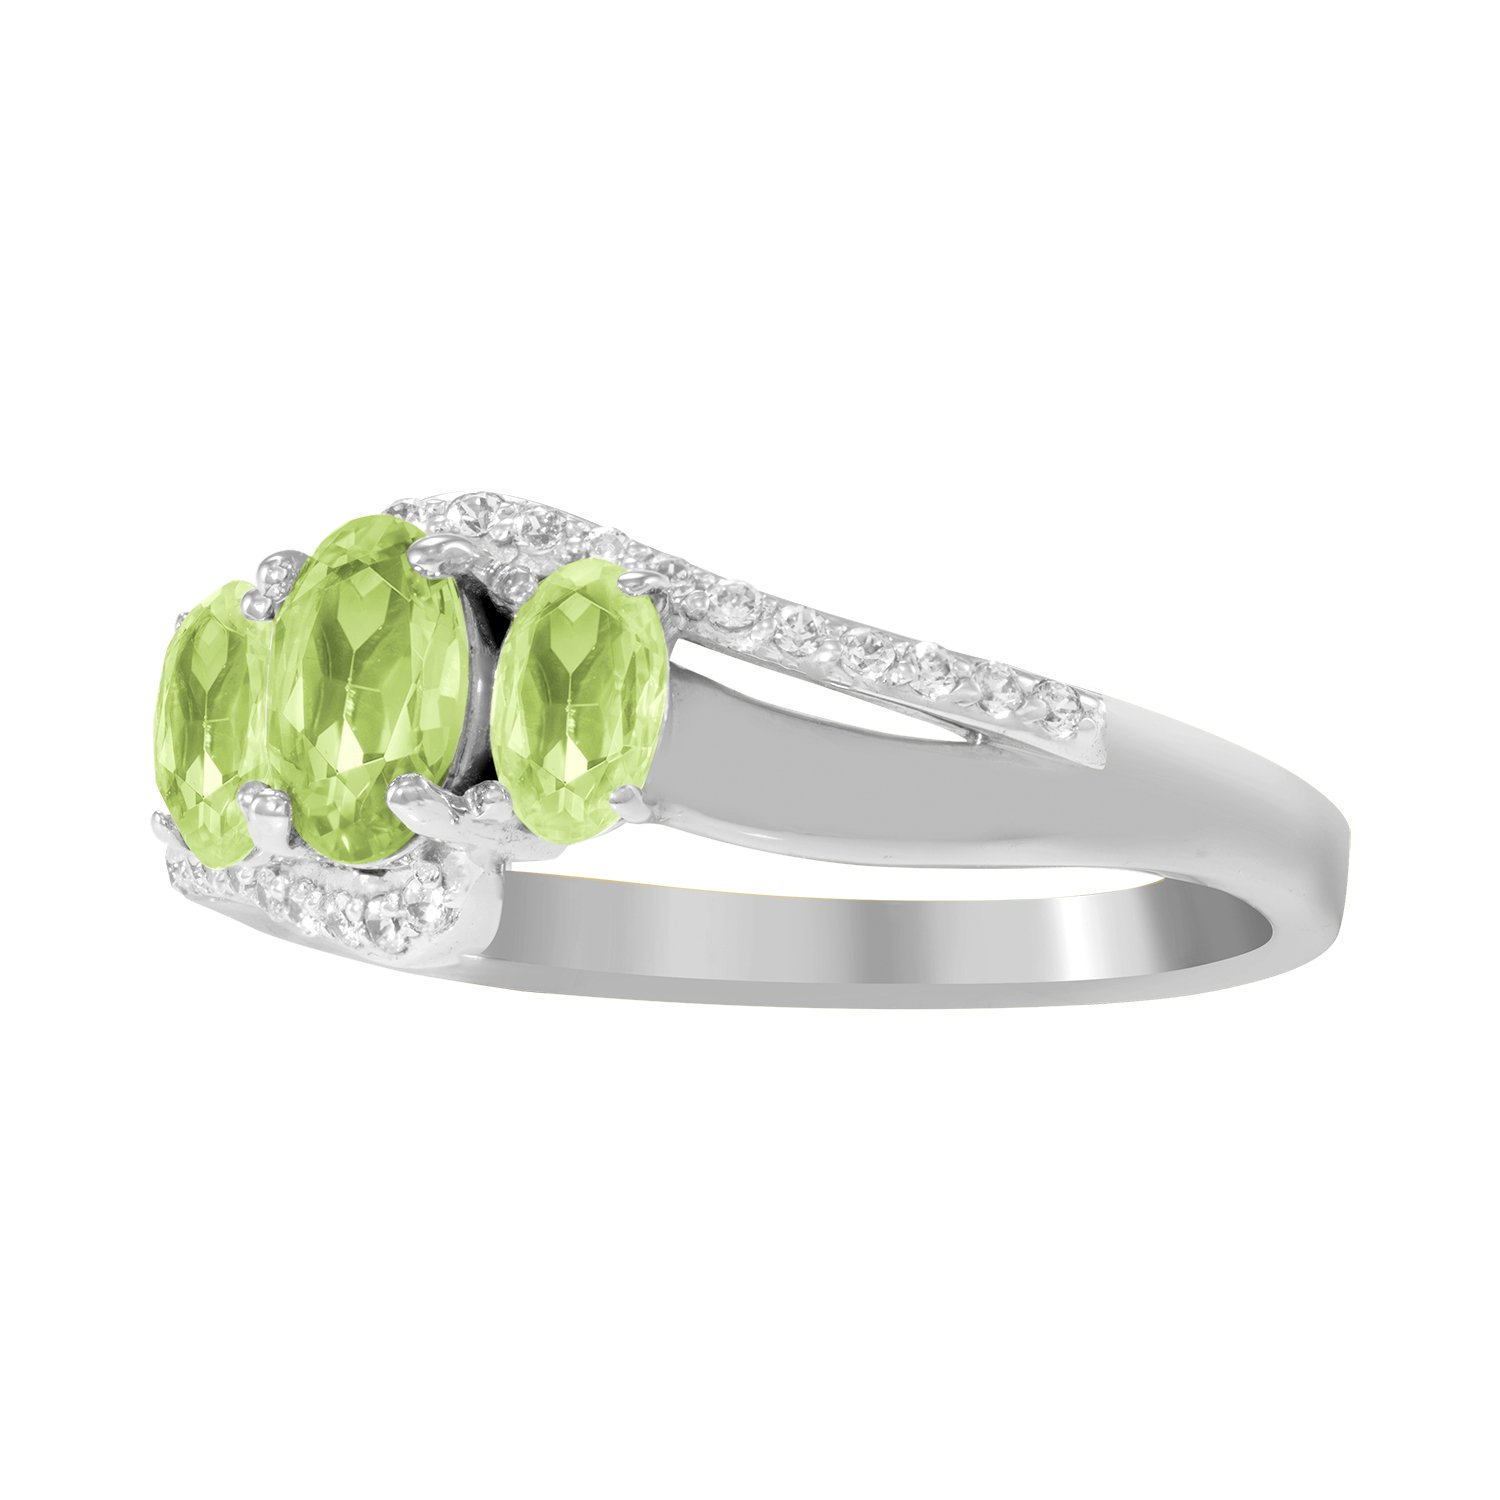 ArtCarved Beauty Custom Simulated Birthstone Womens Ring Sterling Silver Size 6 LQTRIO-SS-S-03-6